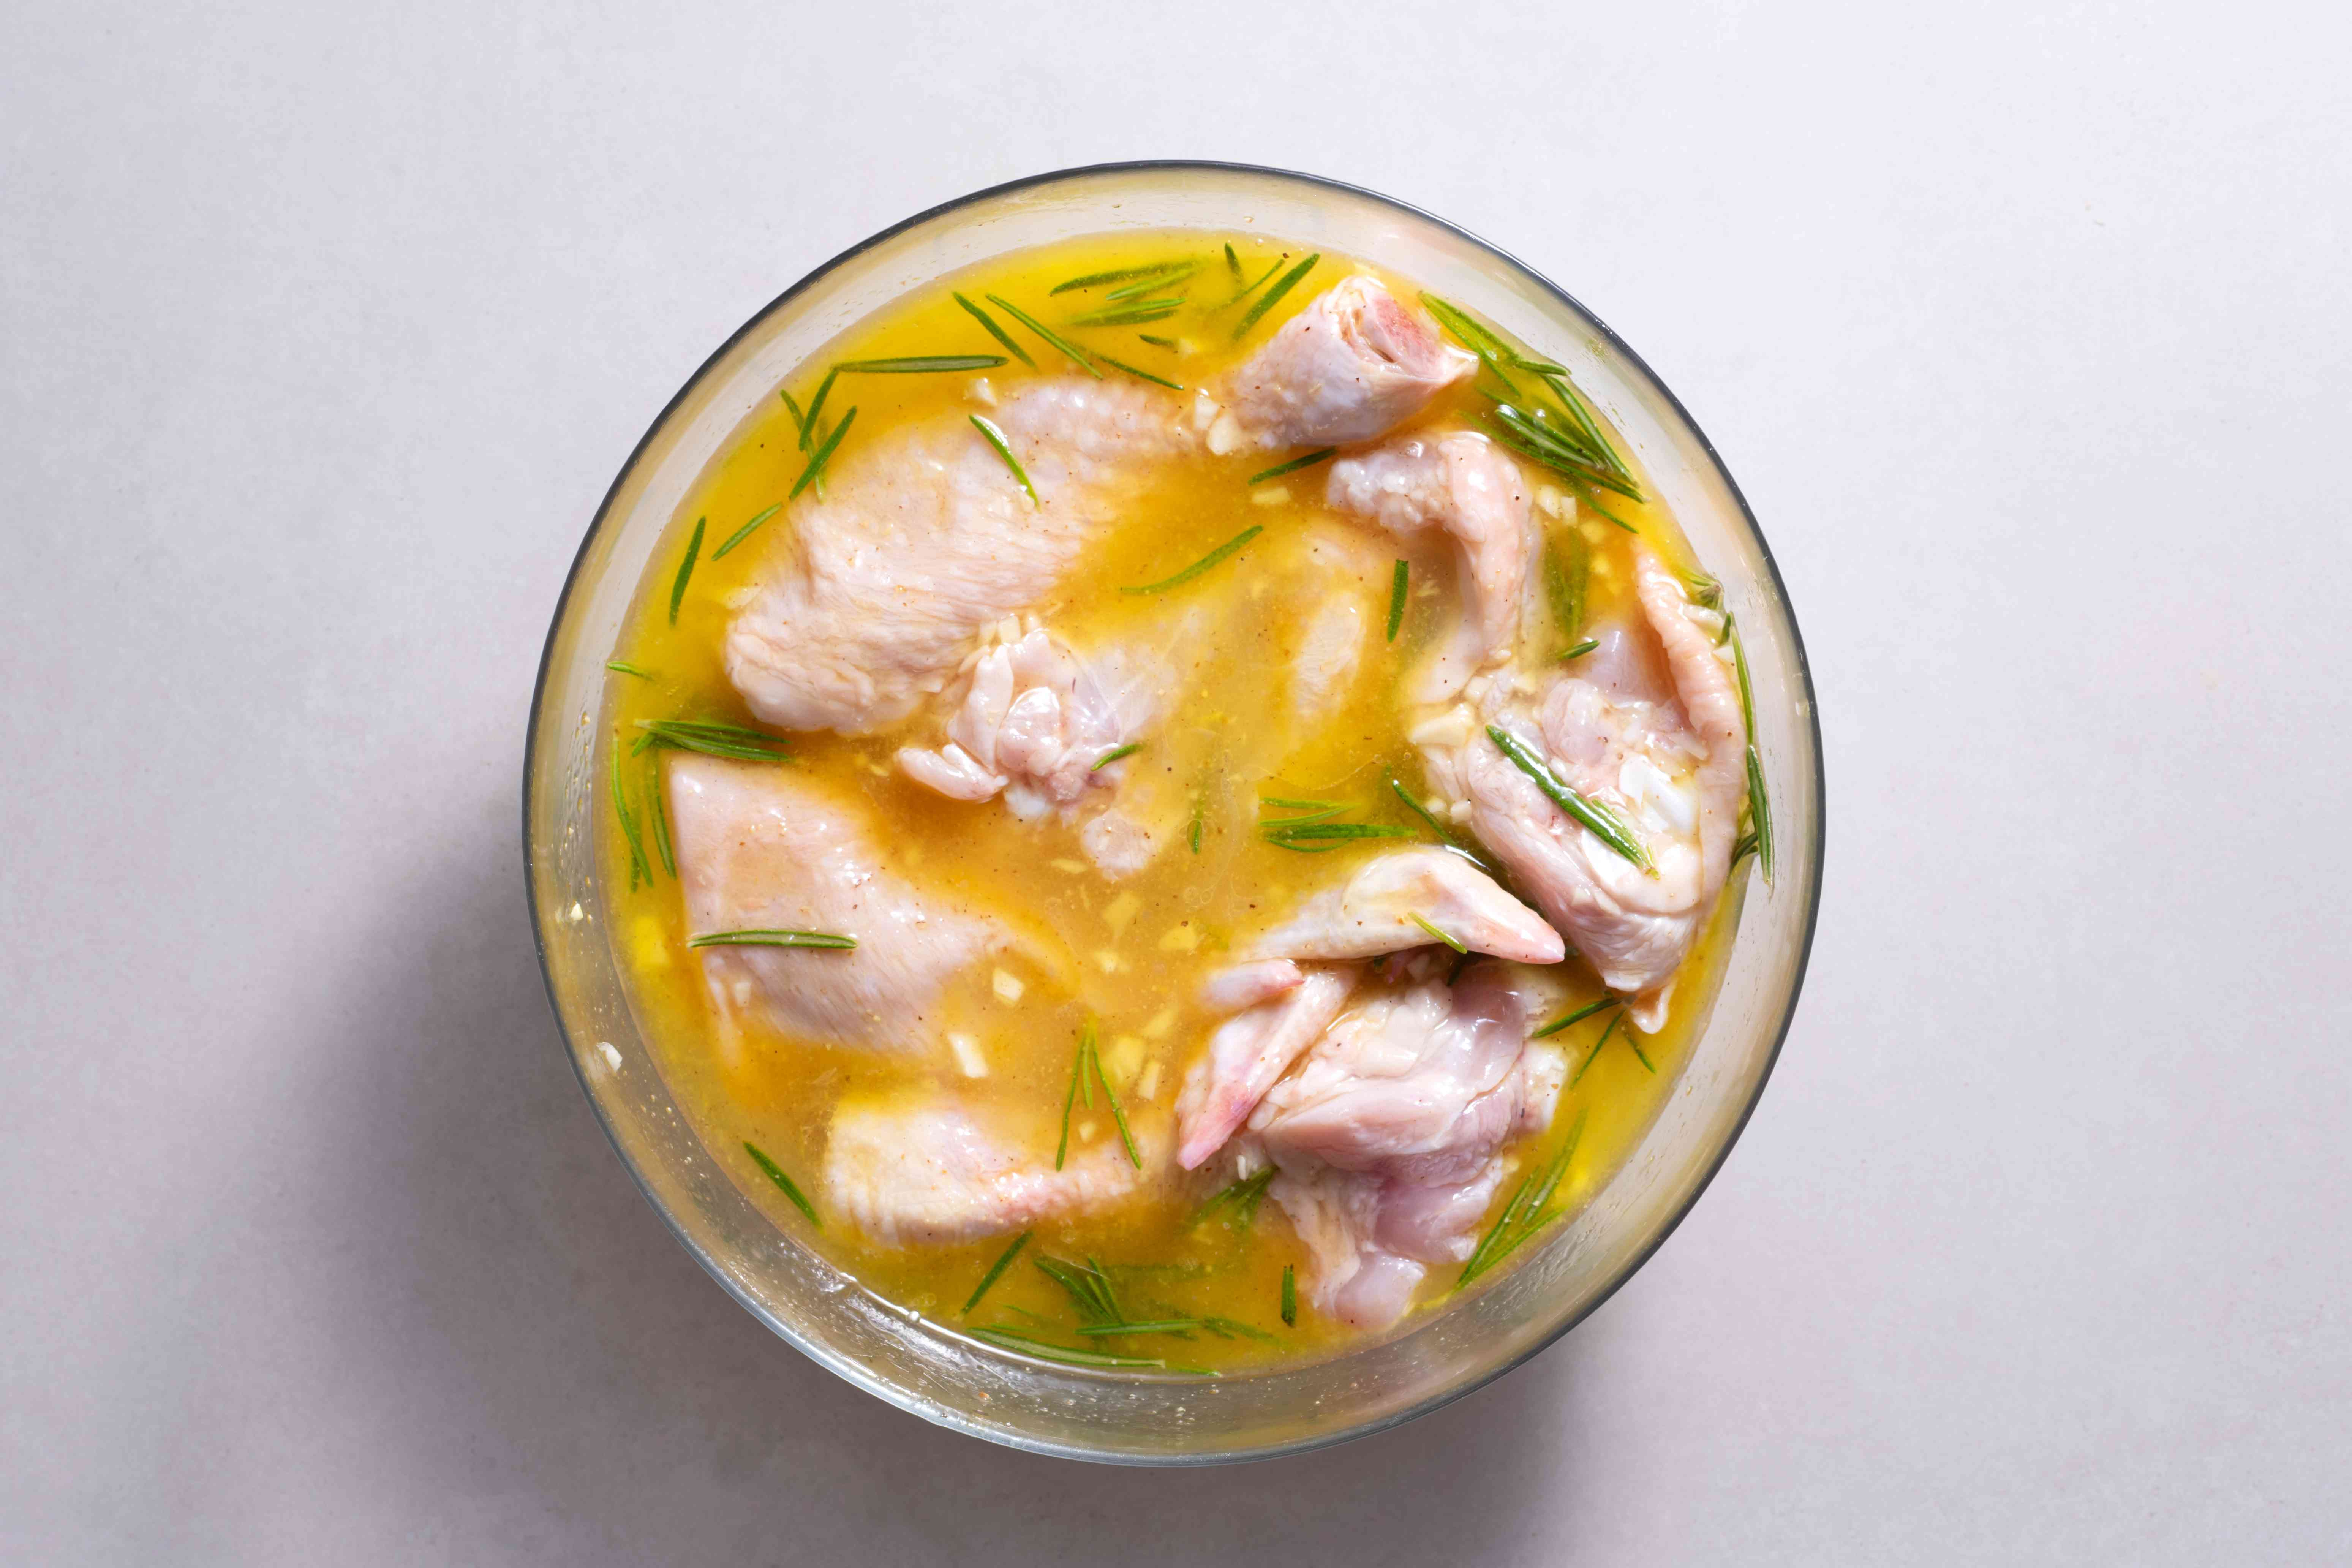 Lemon and Rosemary Marinade Recipe with Chicken in a bowl